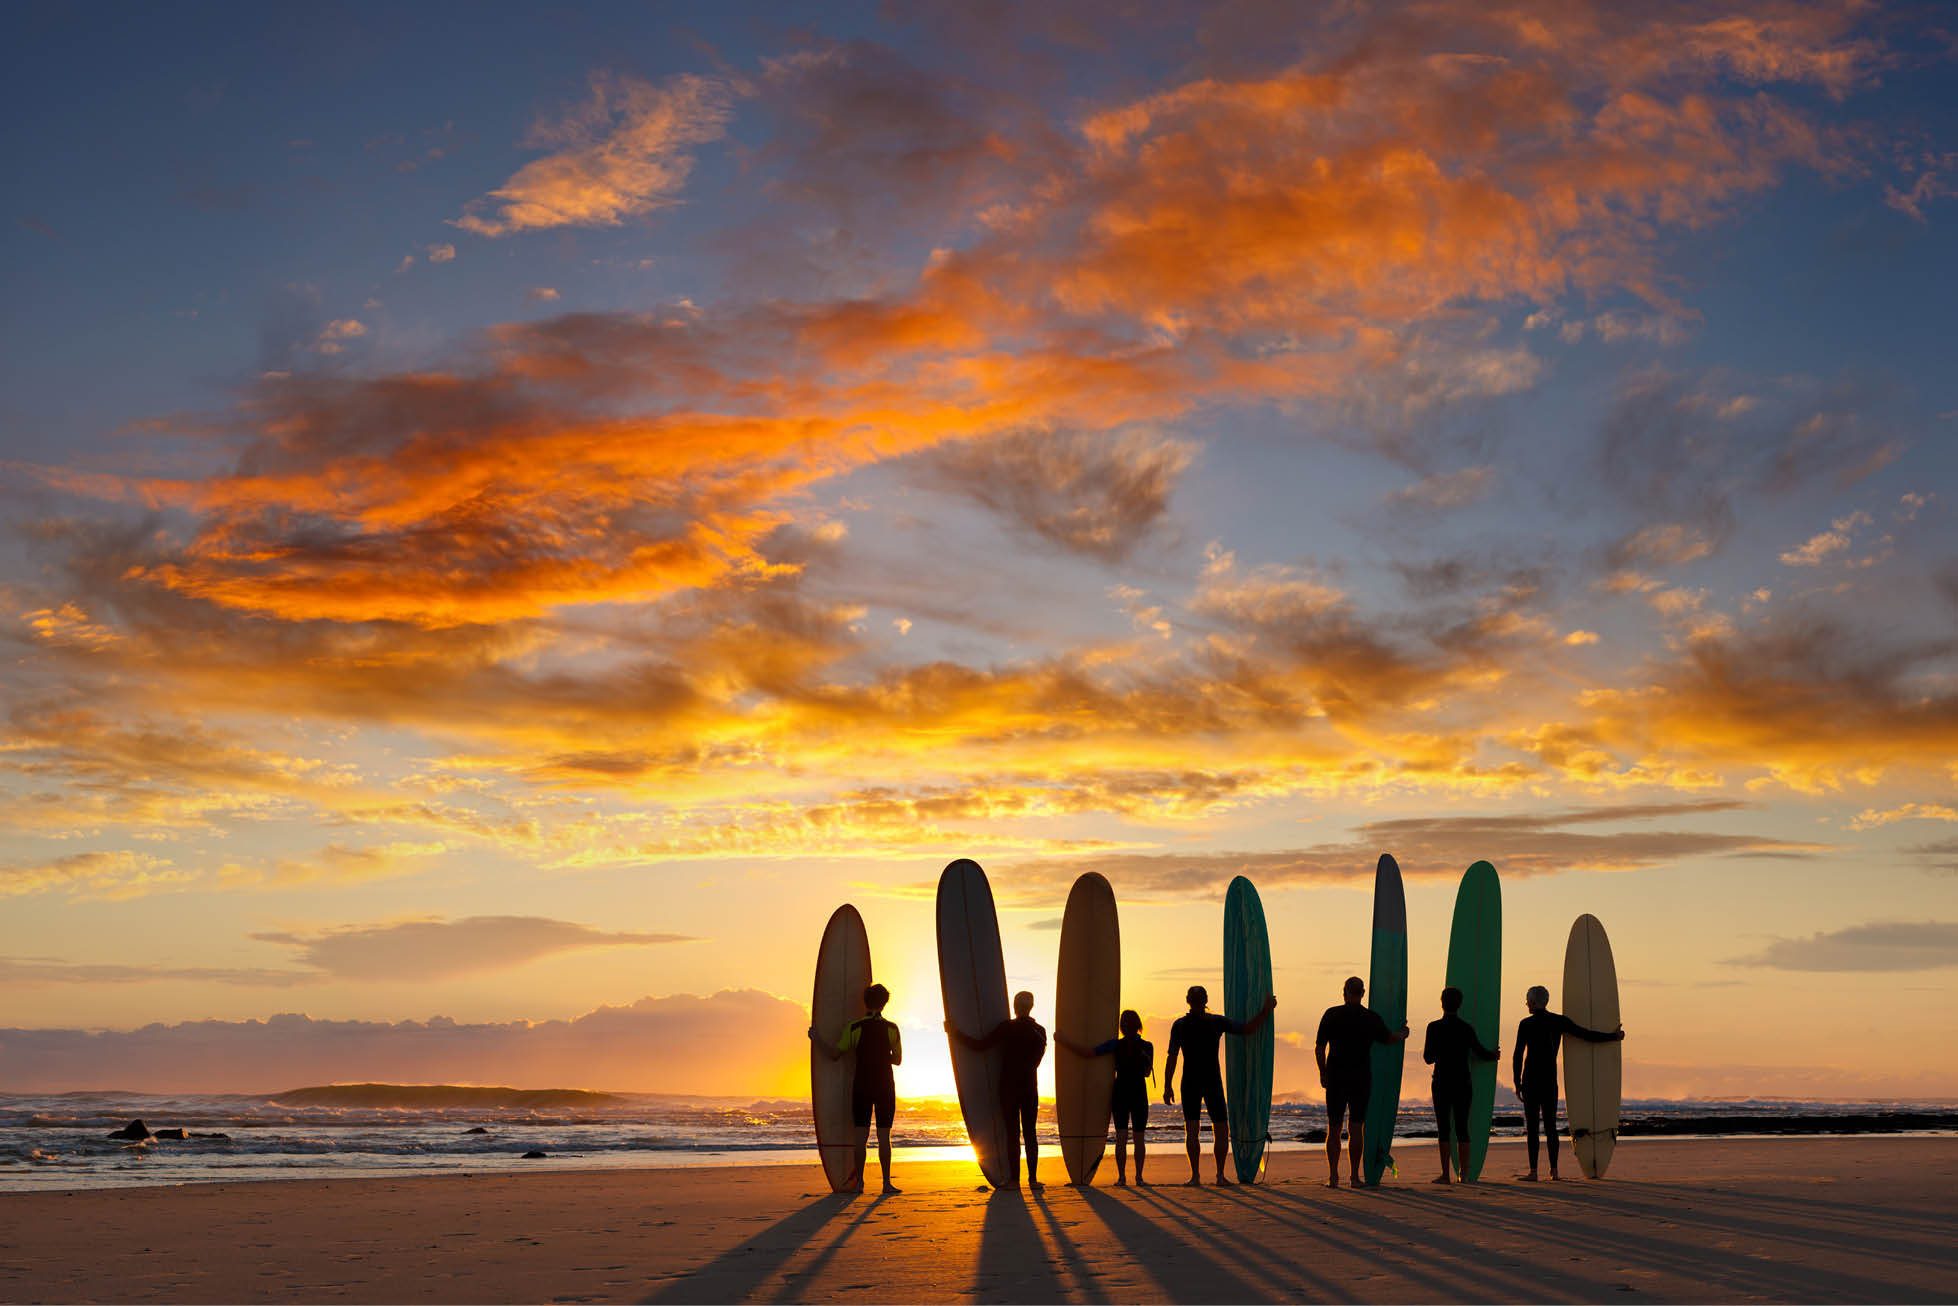 surfers seen against a sunset